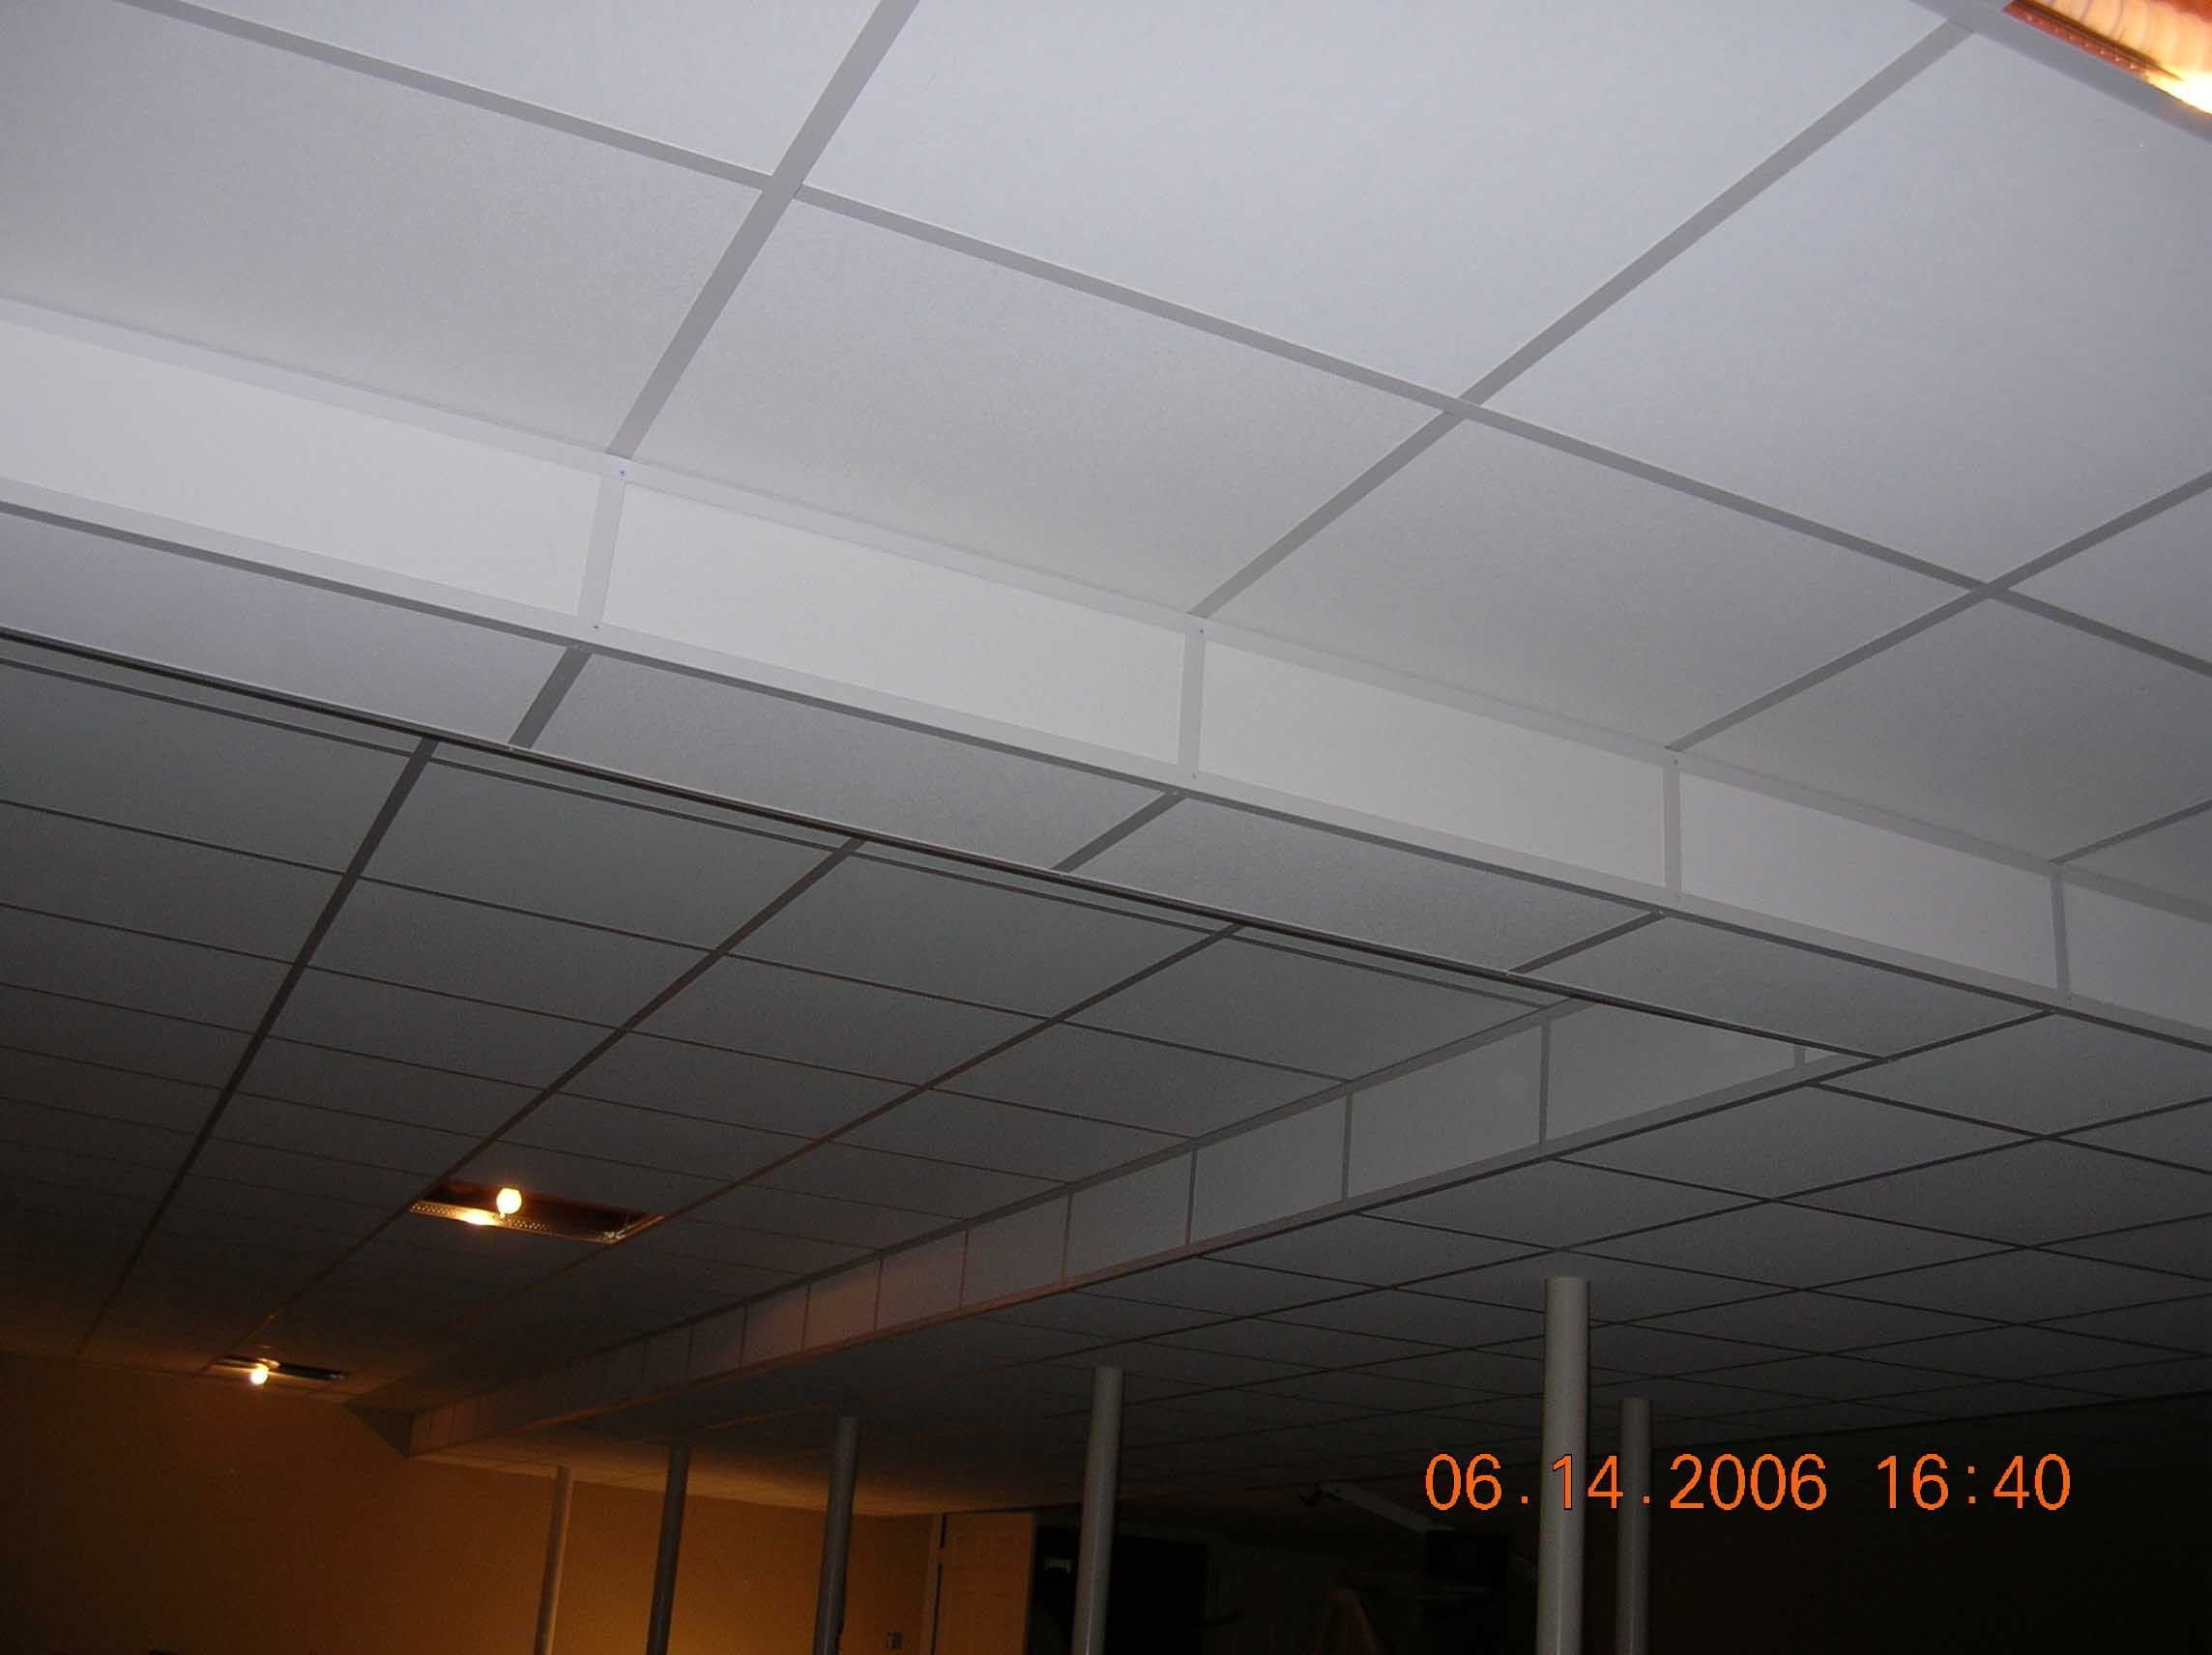 basement drop tiles low down com for ceiling creativechairsandtables pin ceilings